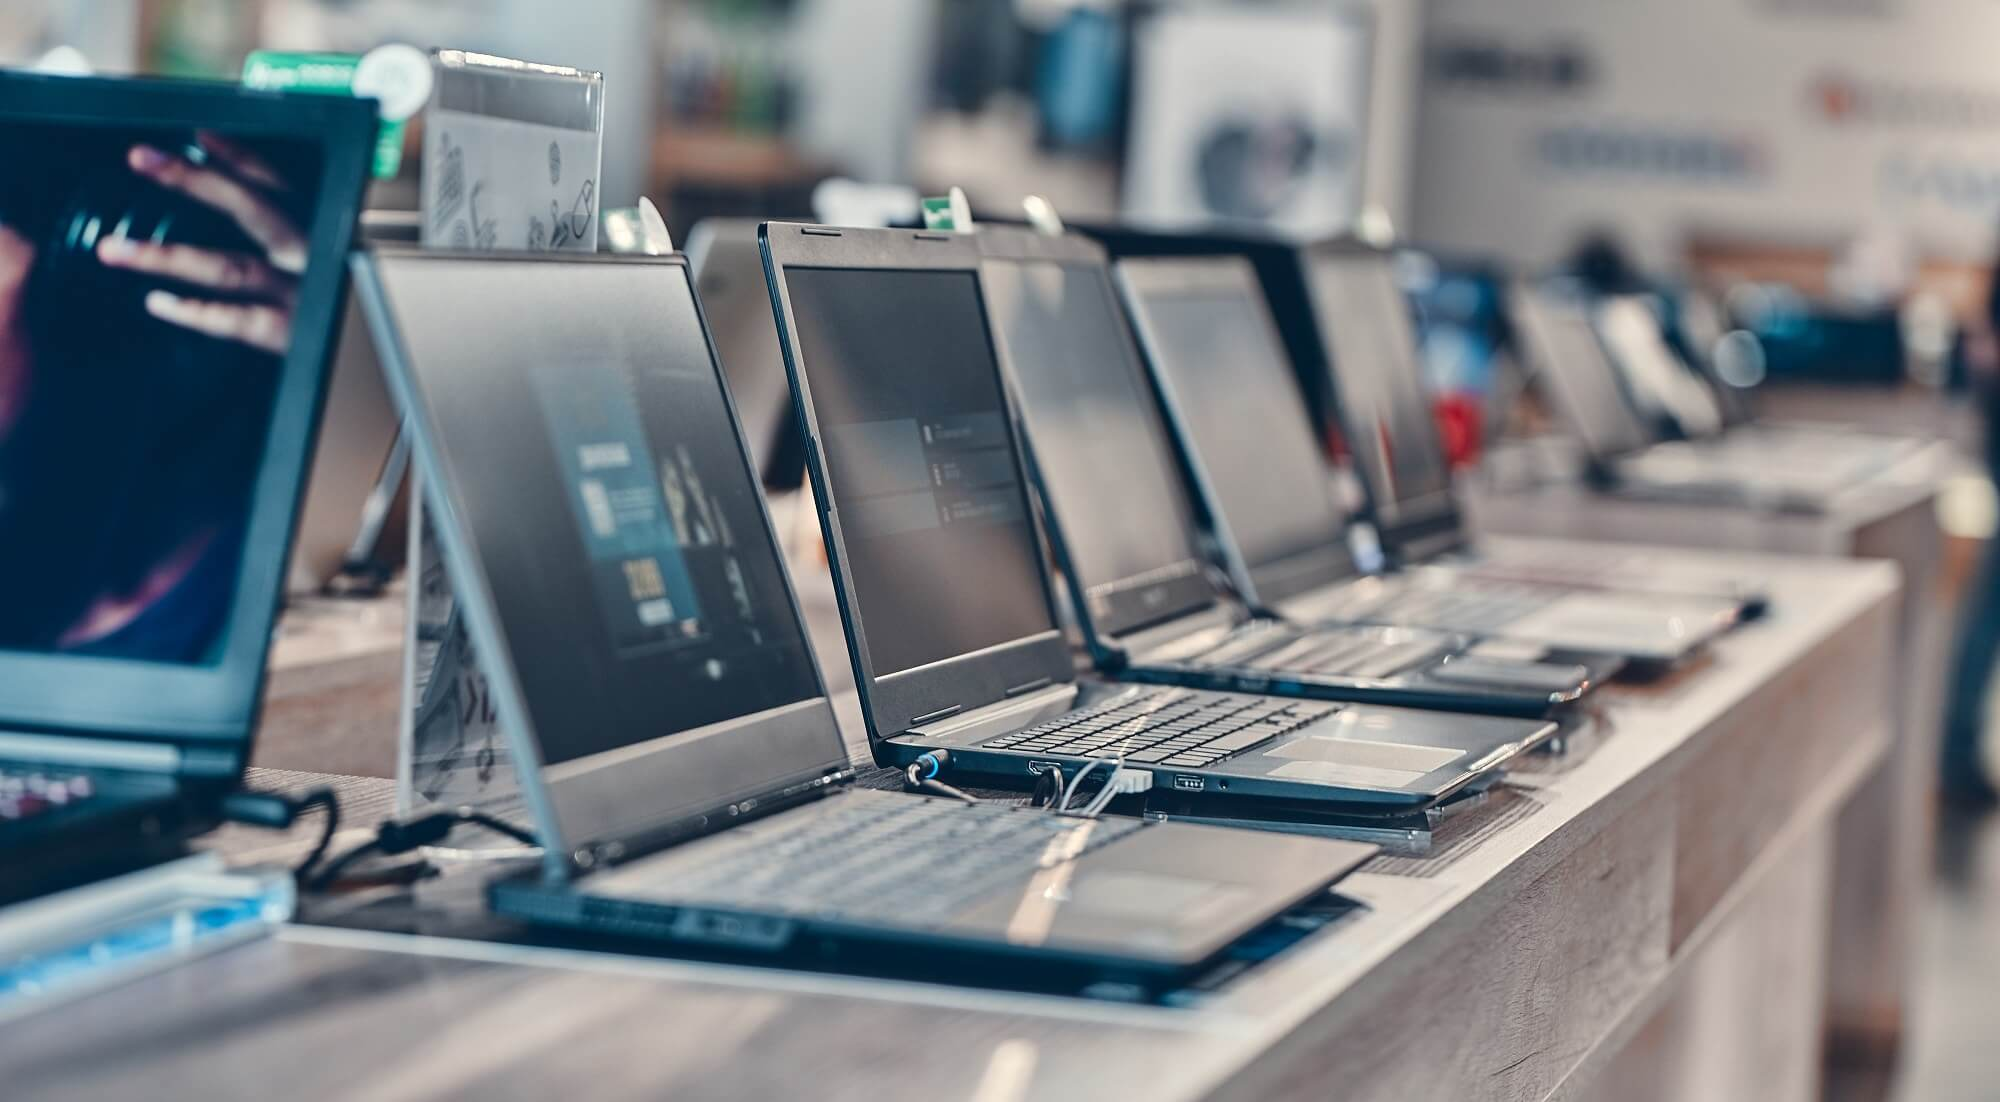 Gartner predicts shipments for PCs, phones and tablets will fall 14% this year